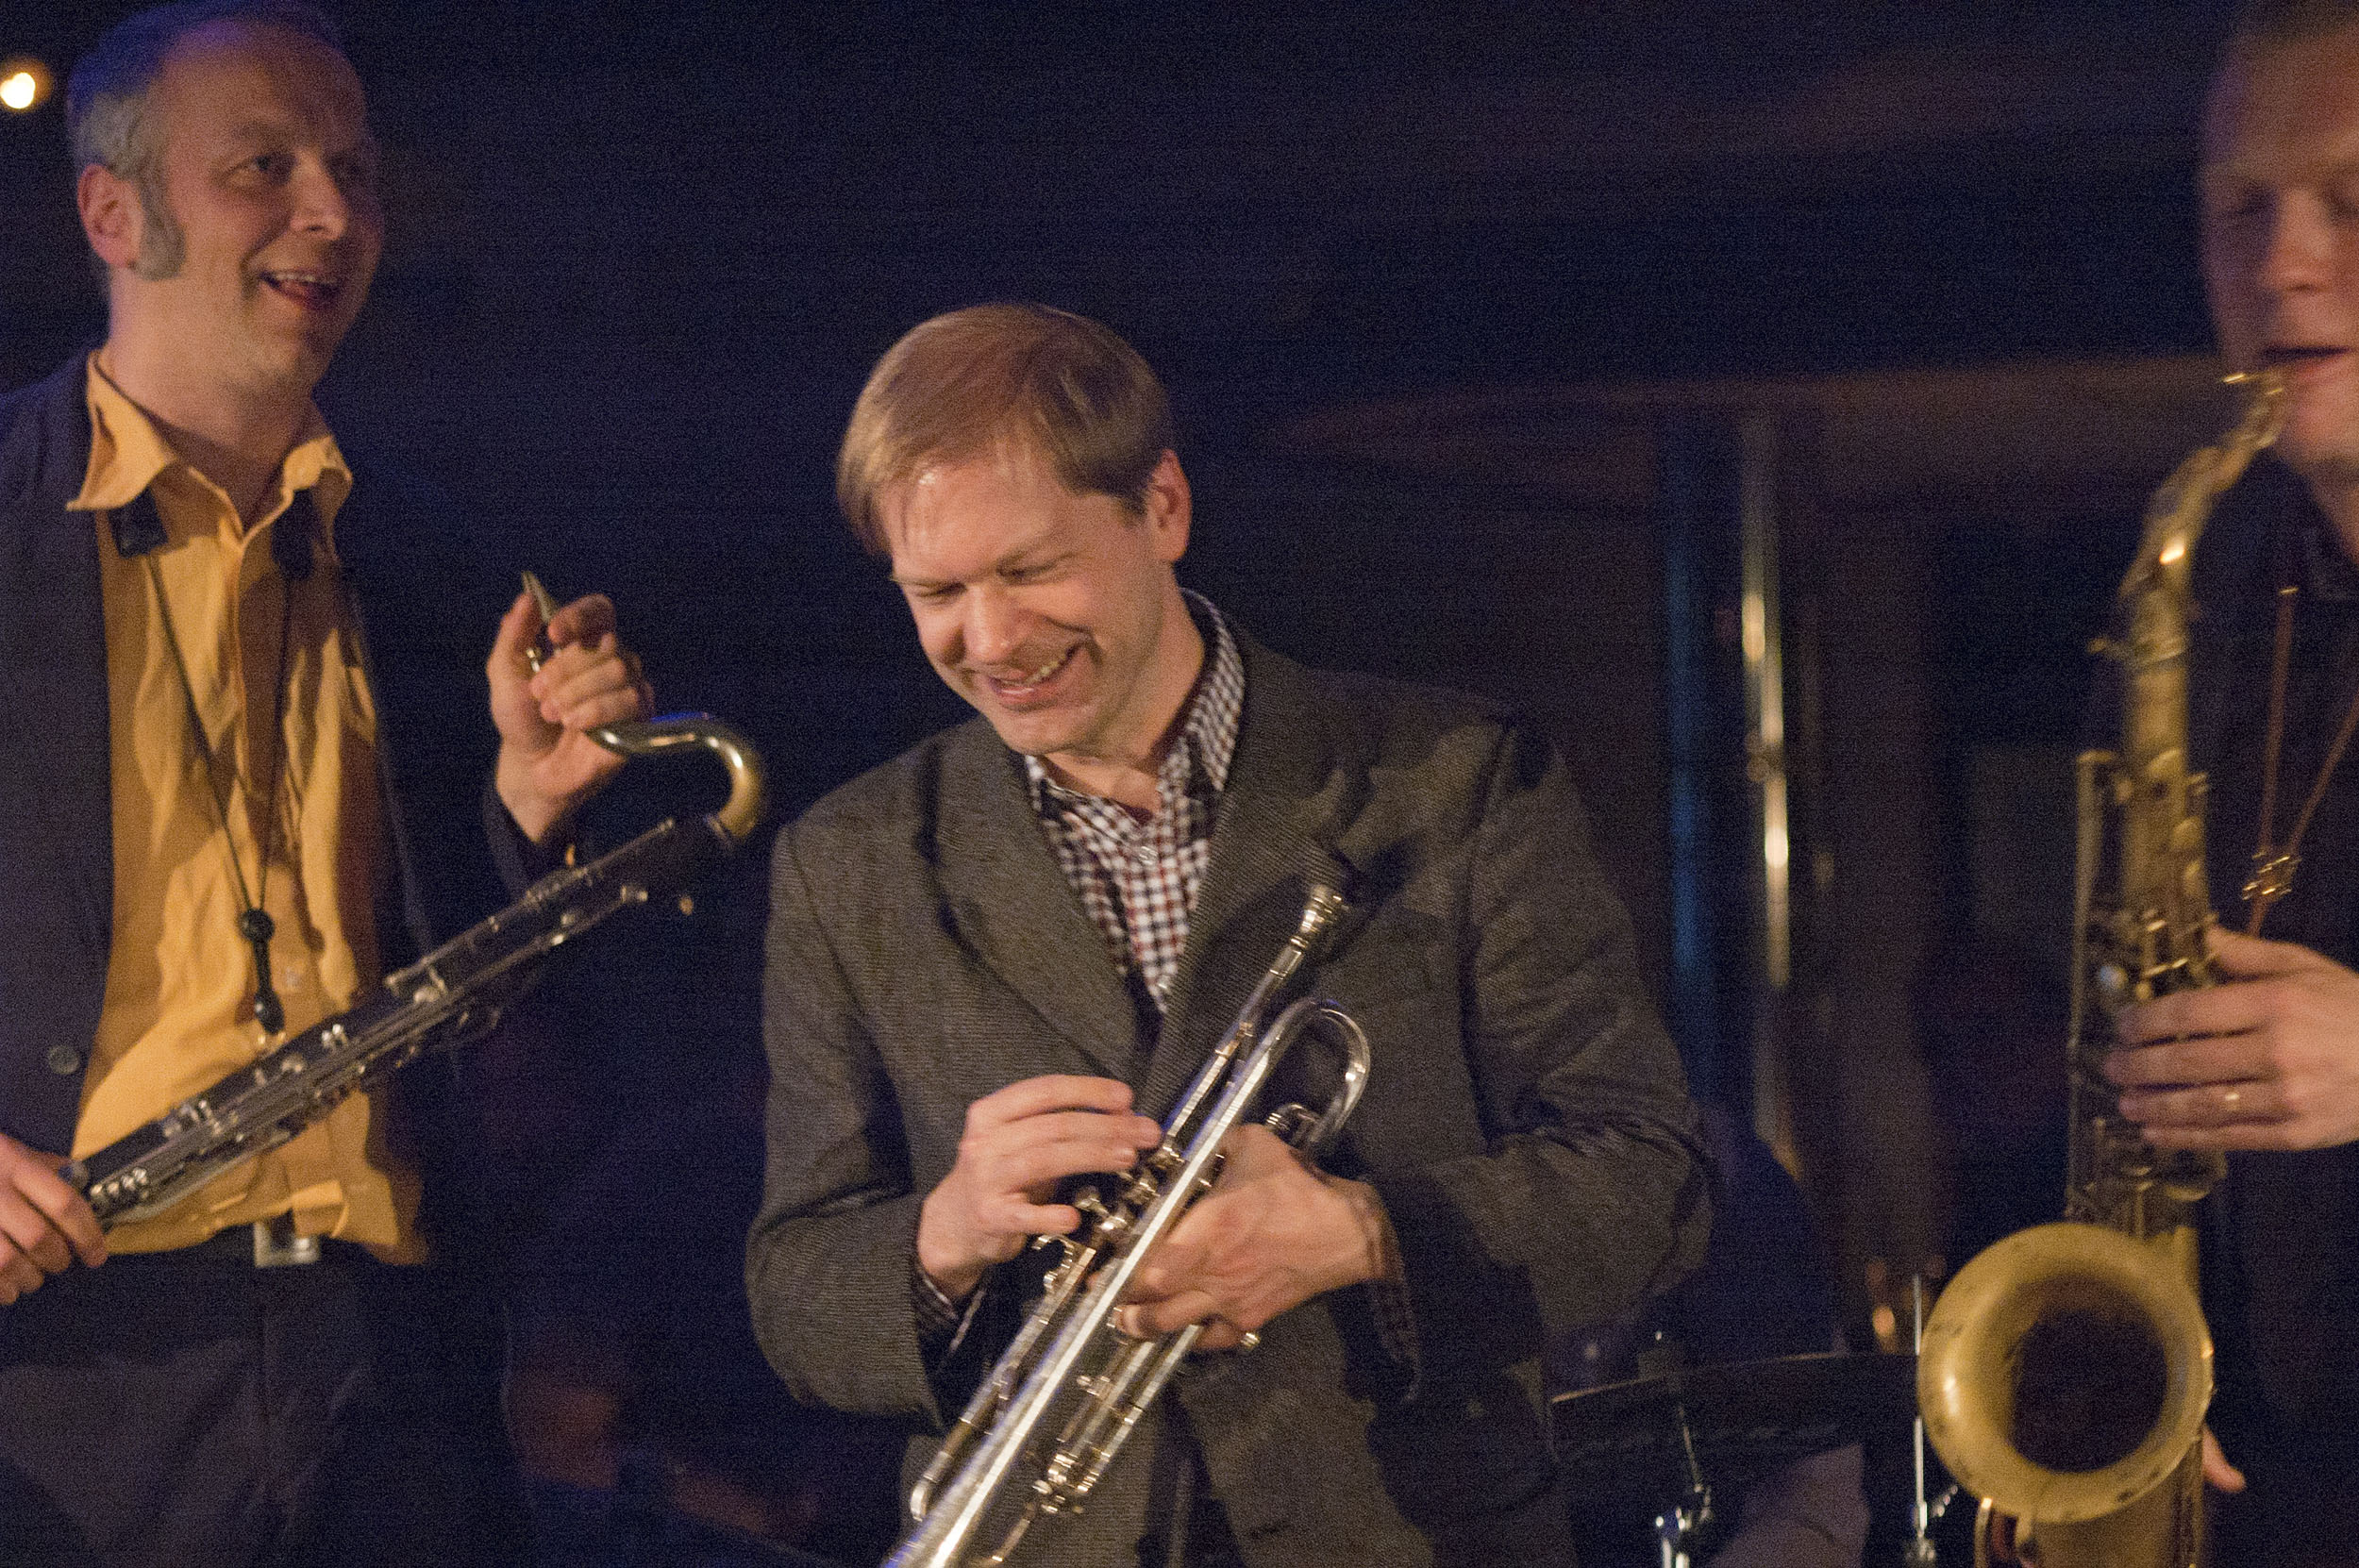 The Deciders at Natjazz 2011